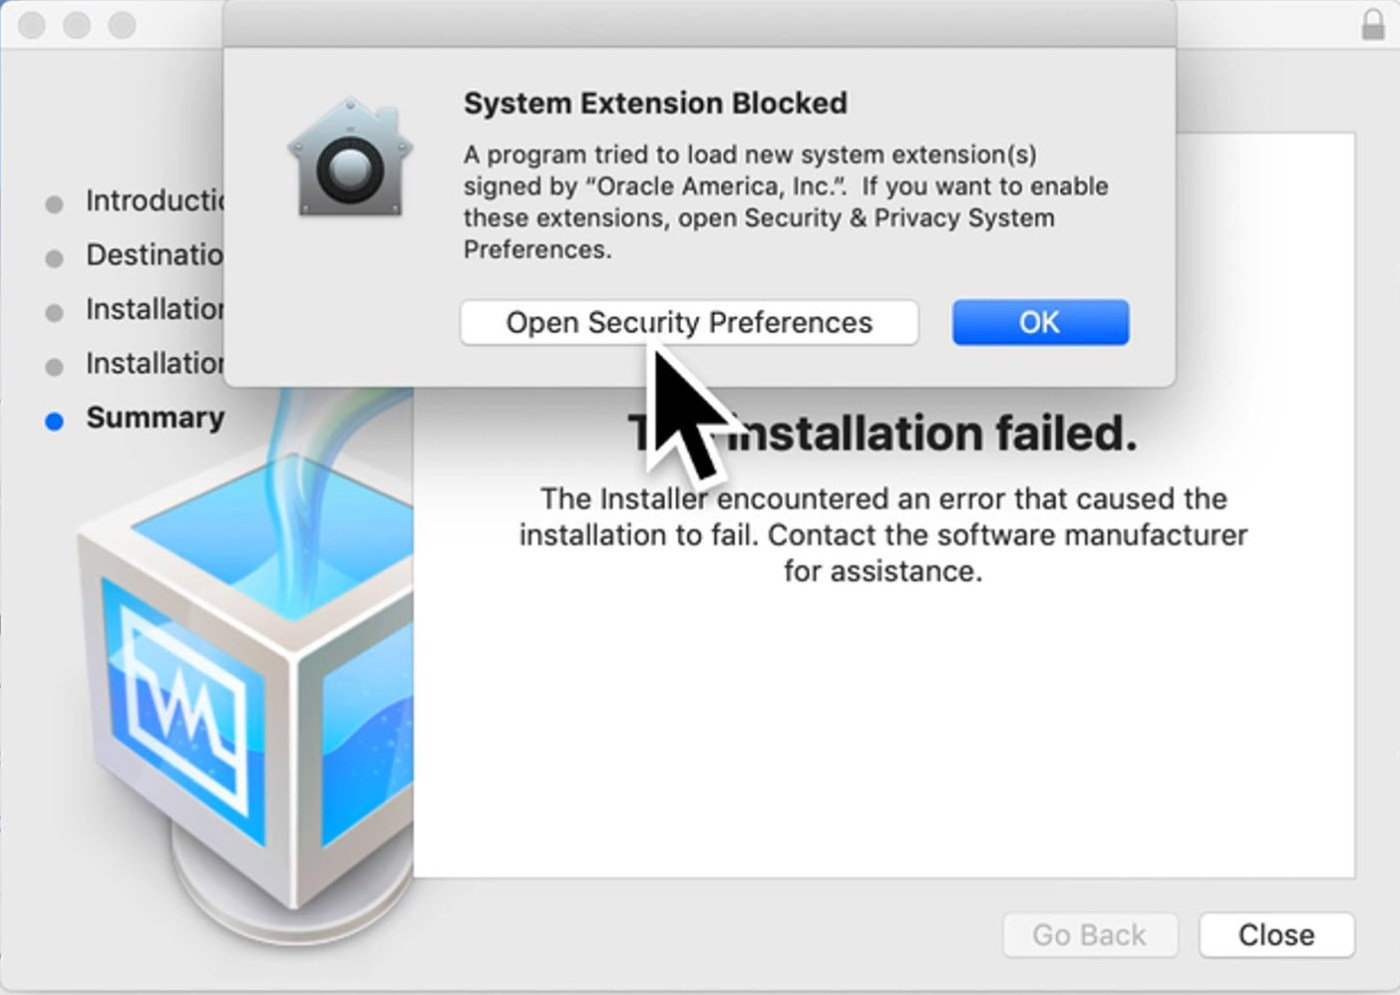 System Extension is Blocked